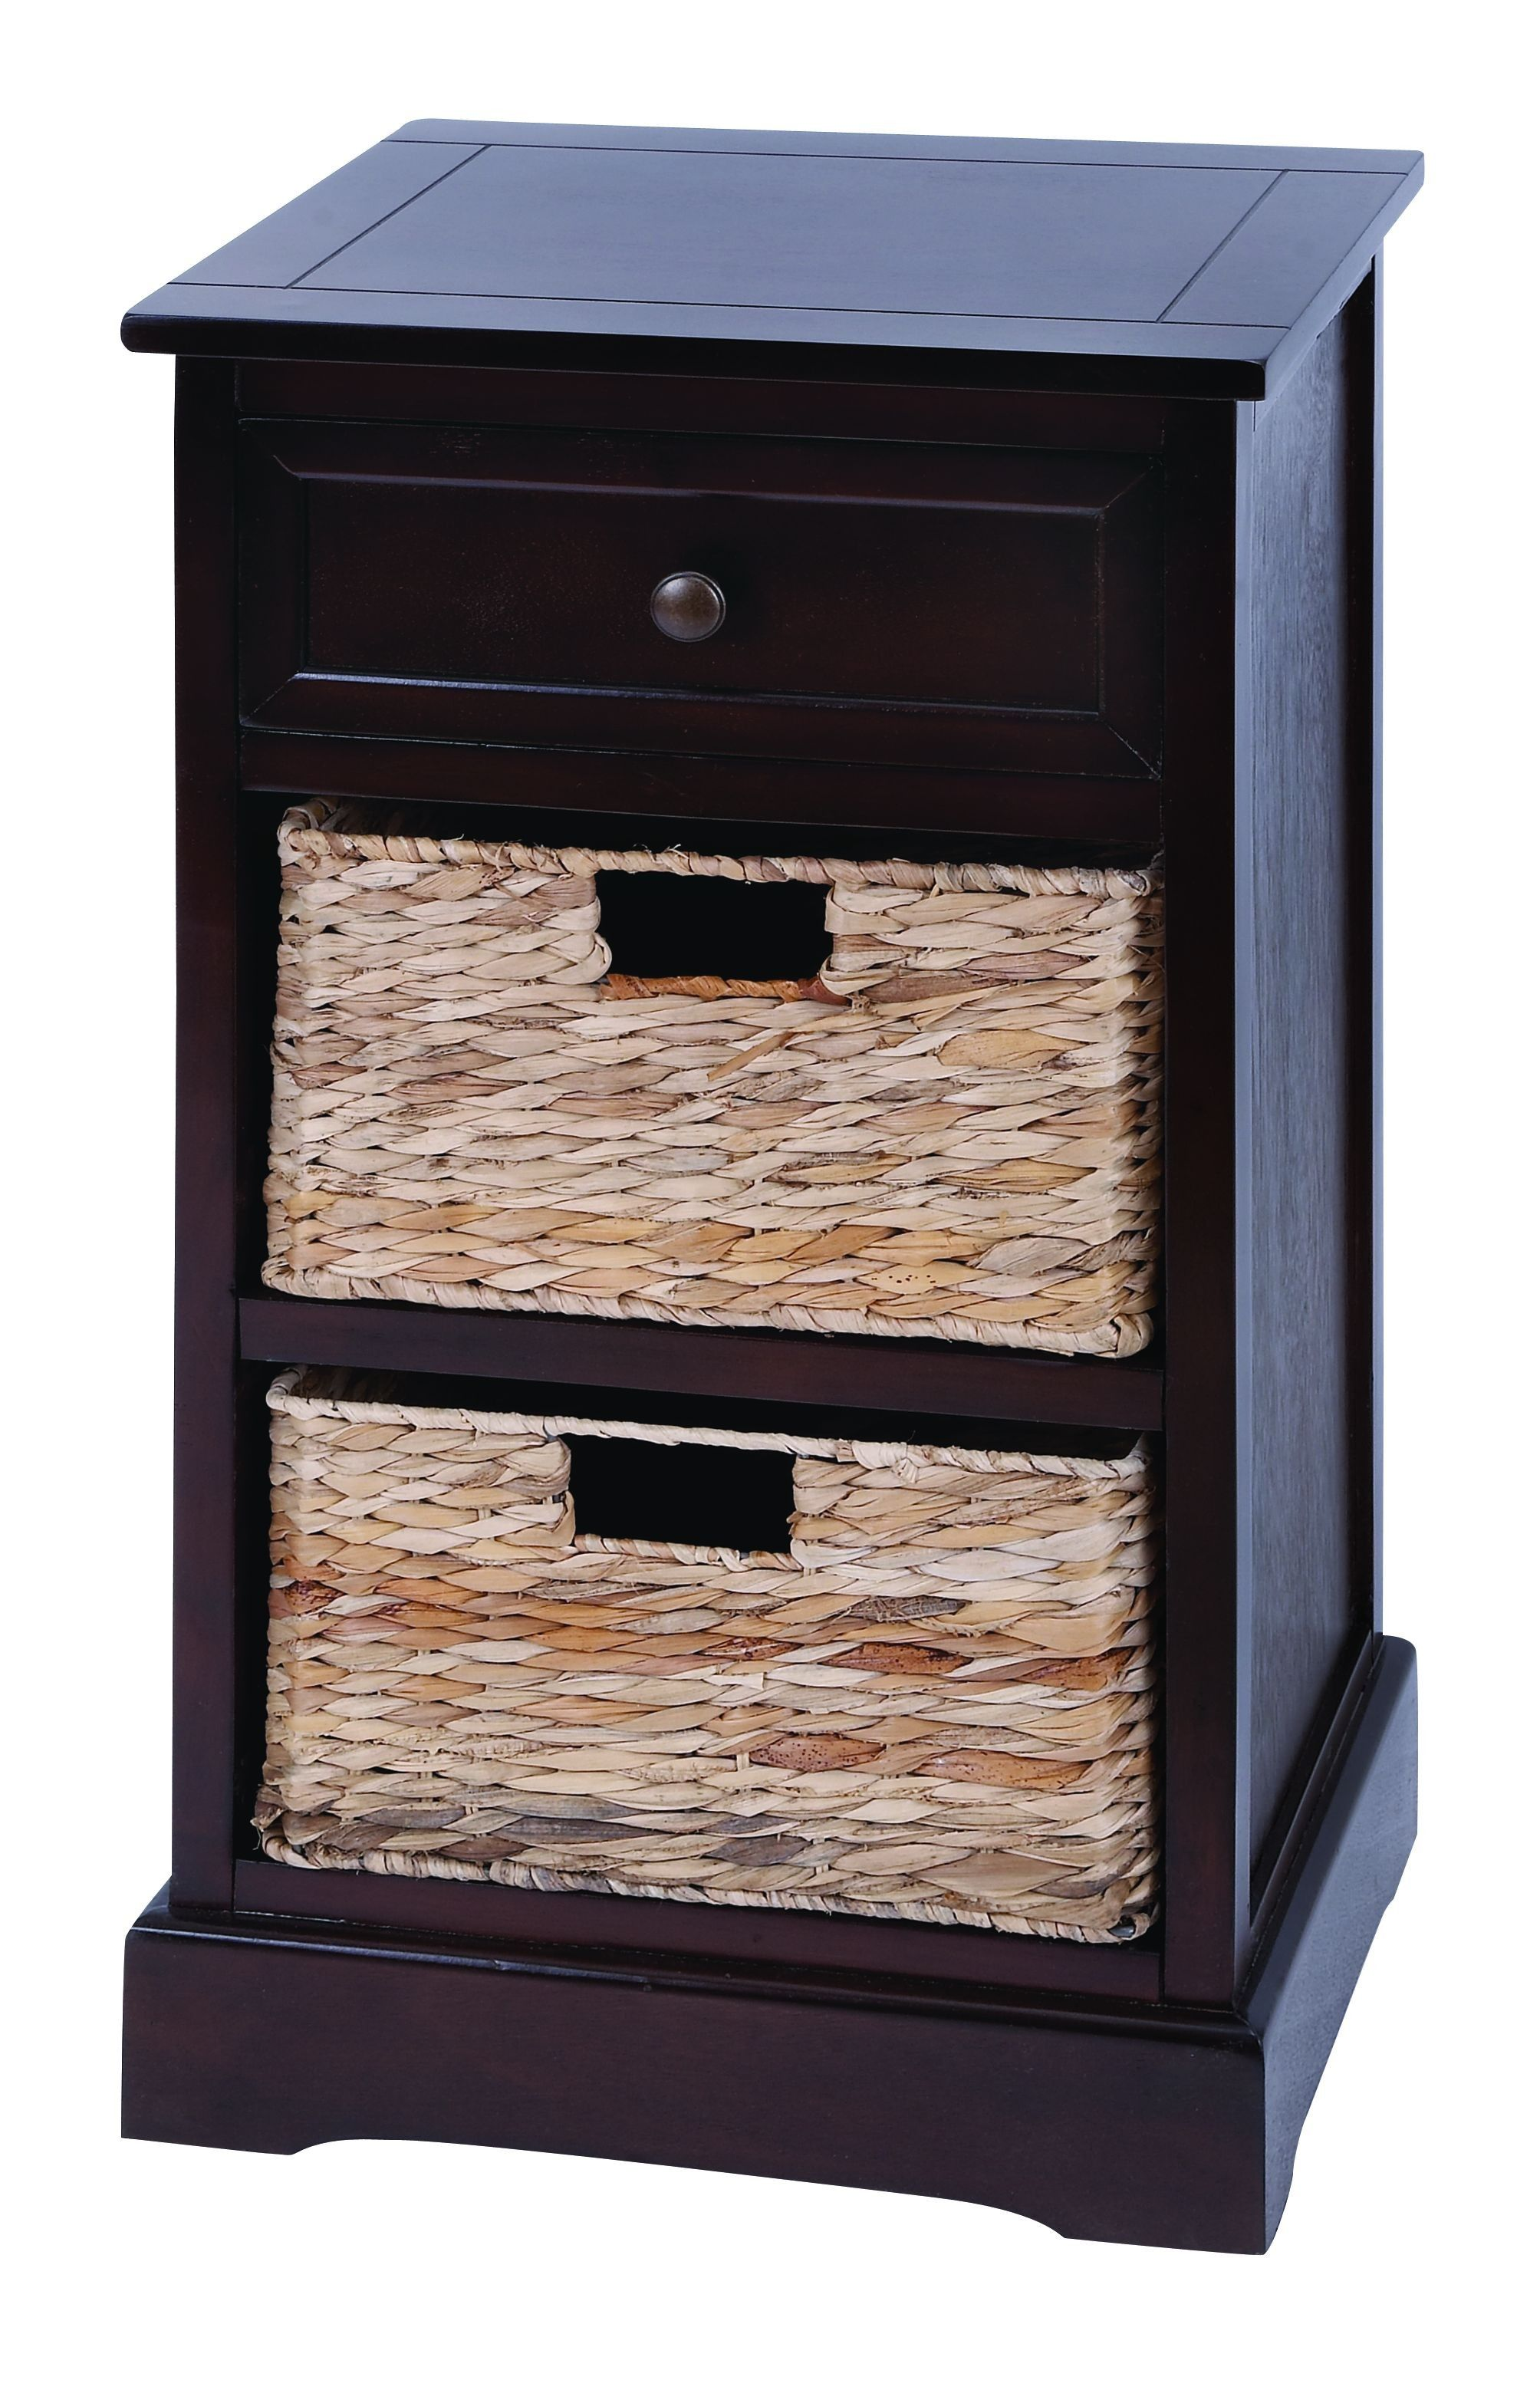 wood cabinet drawer baskets brown accent table furniture with basket drawers lamp lighting accents home decor accessories wall patio garden uttermost sinley small living room